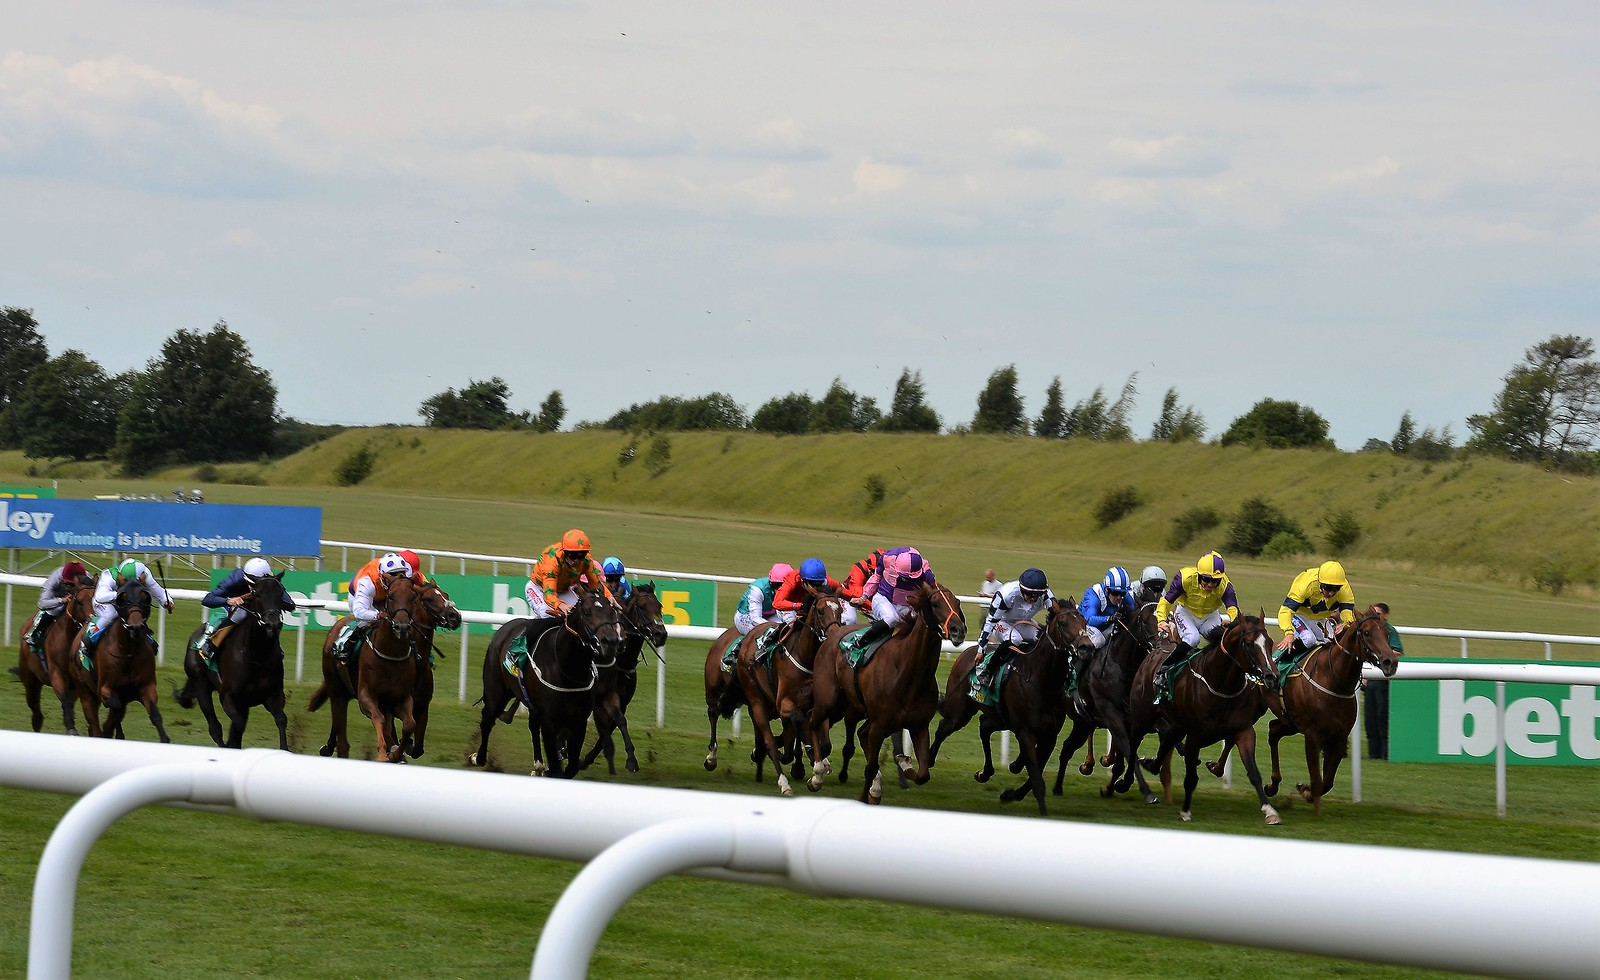 Sprint for home at the Newmarket July Course